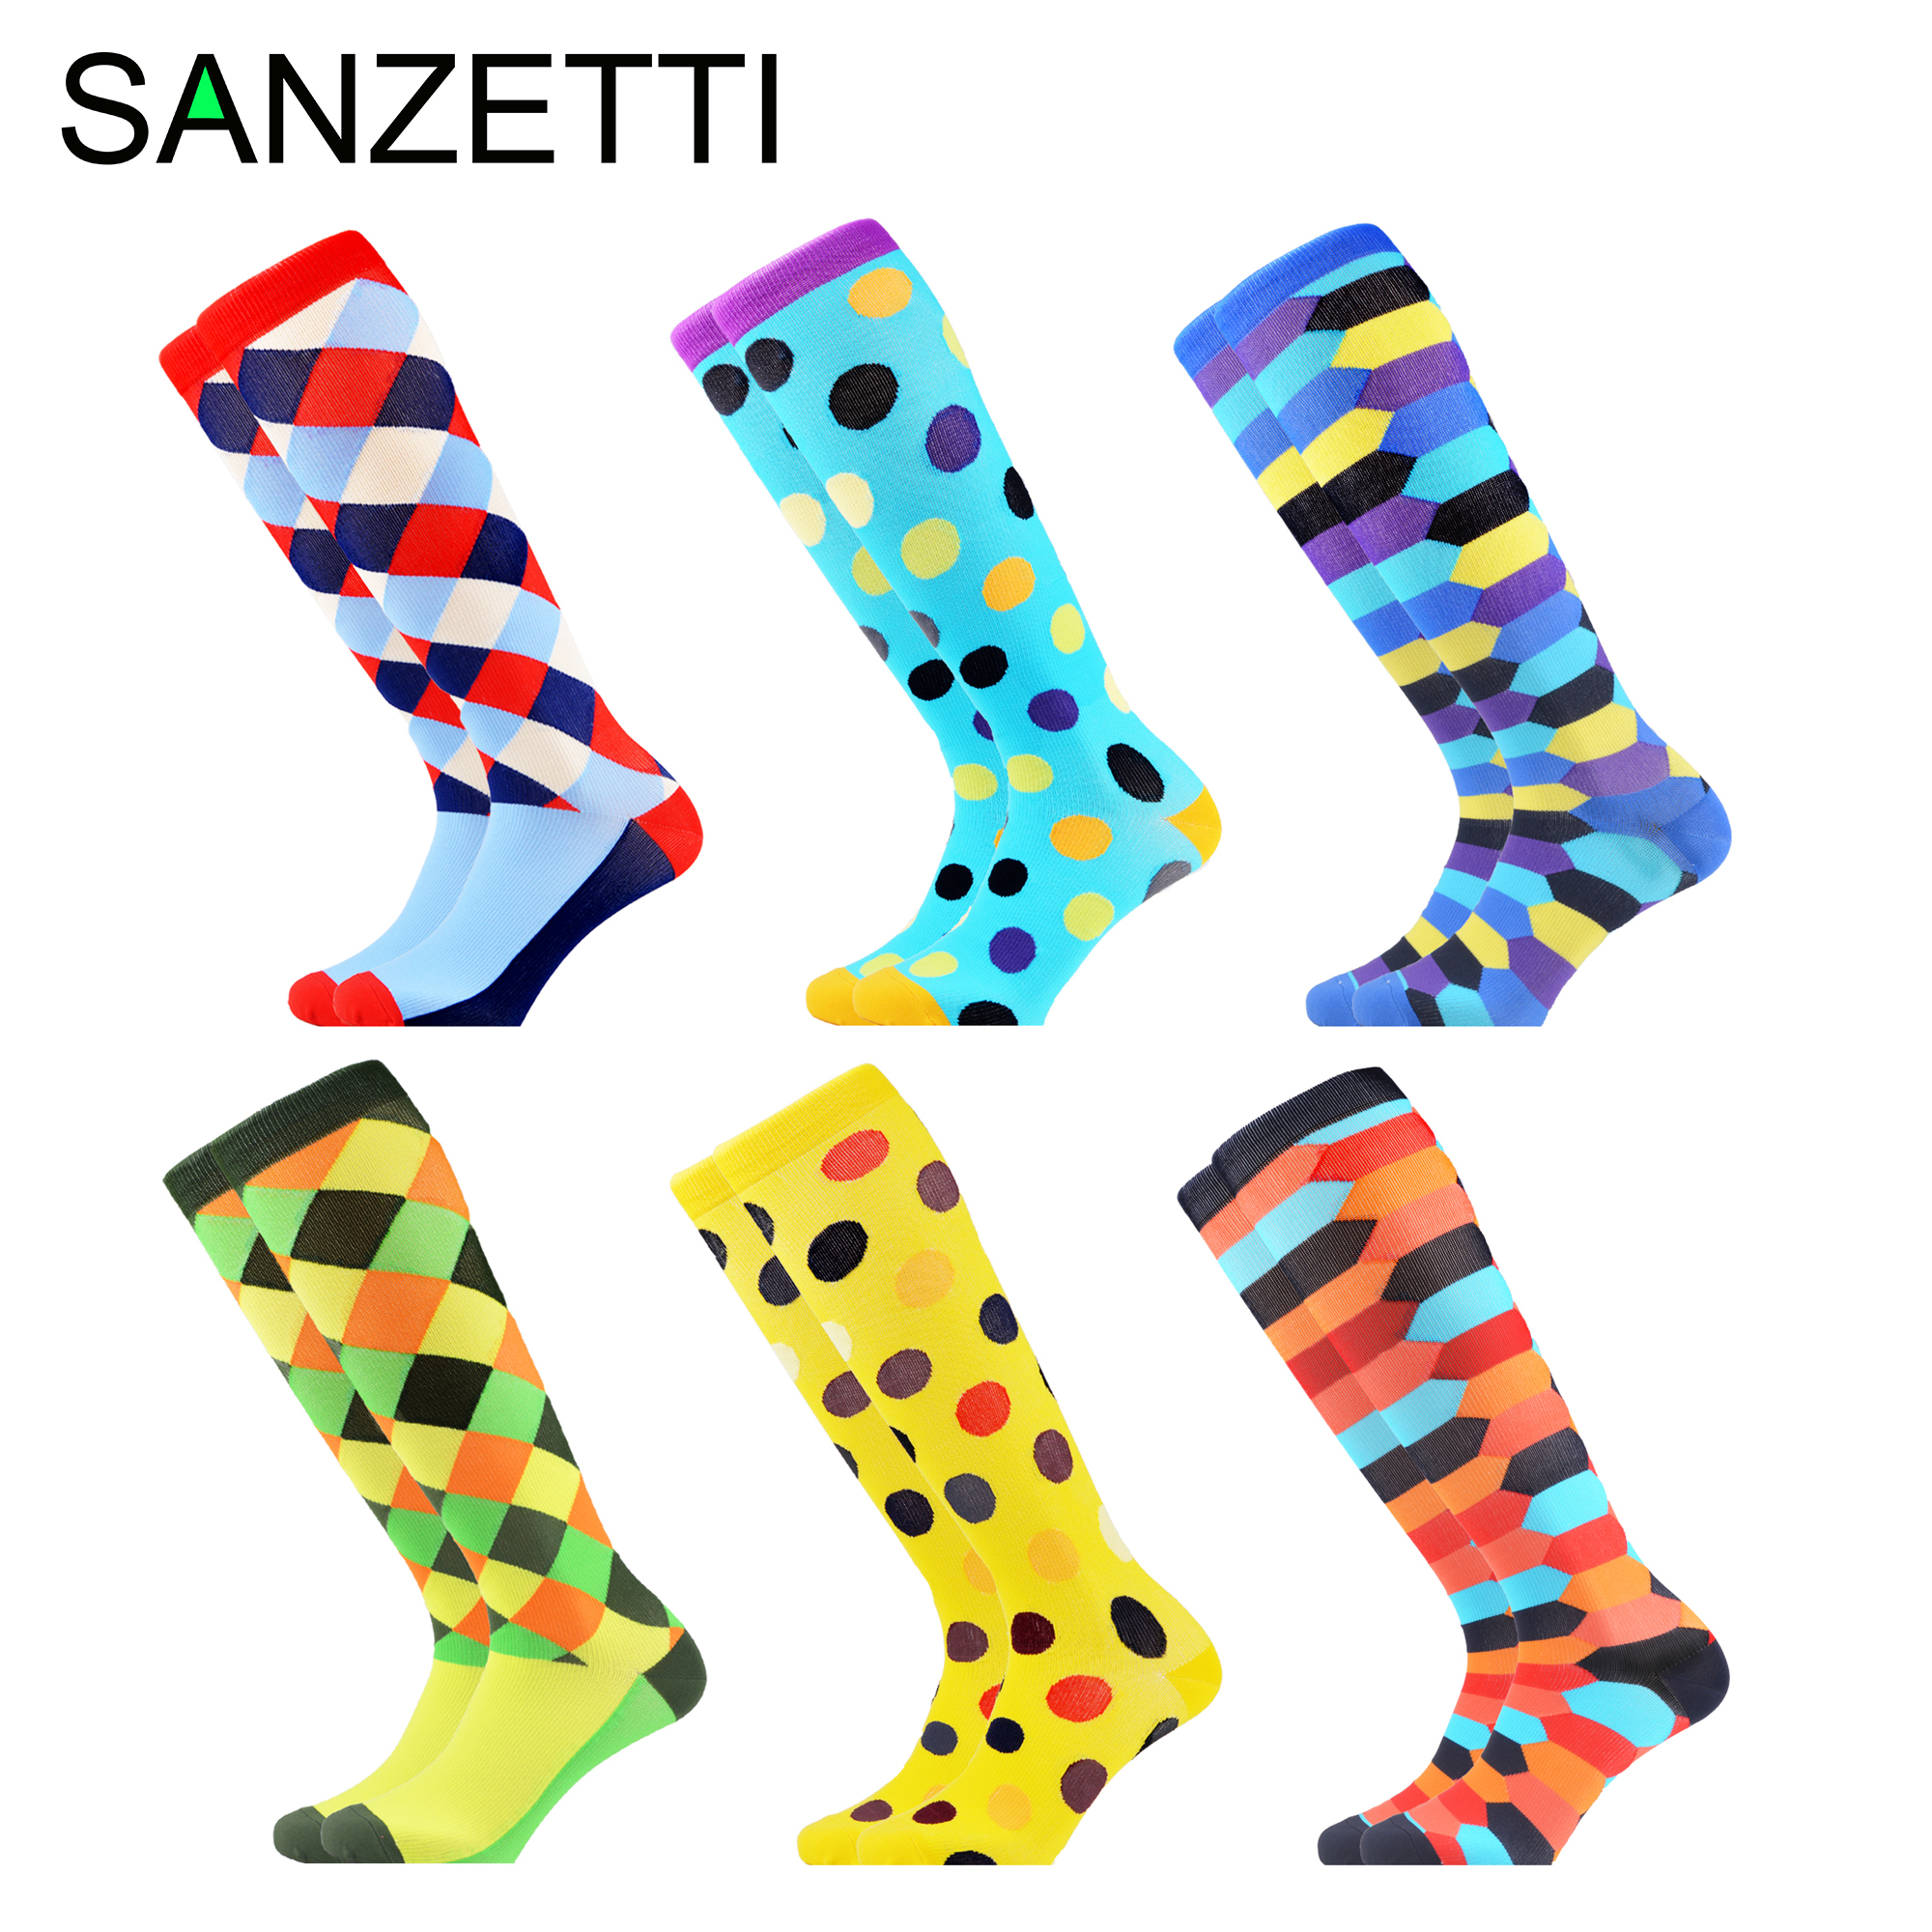 SANZETTI 6 Pairs/Lot Women Combed Cotton Compression SocksColorful Leg Support Stretch  Below Knee Anti-Fatigue Long Happy Socks